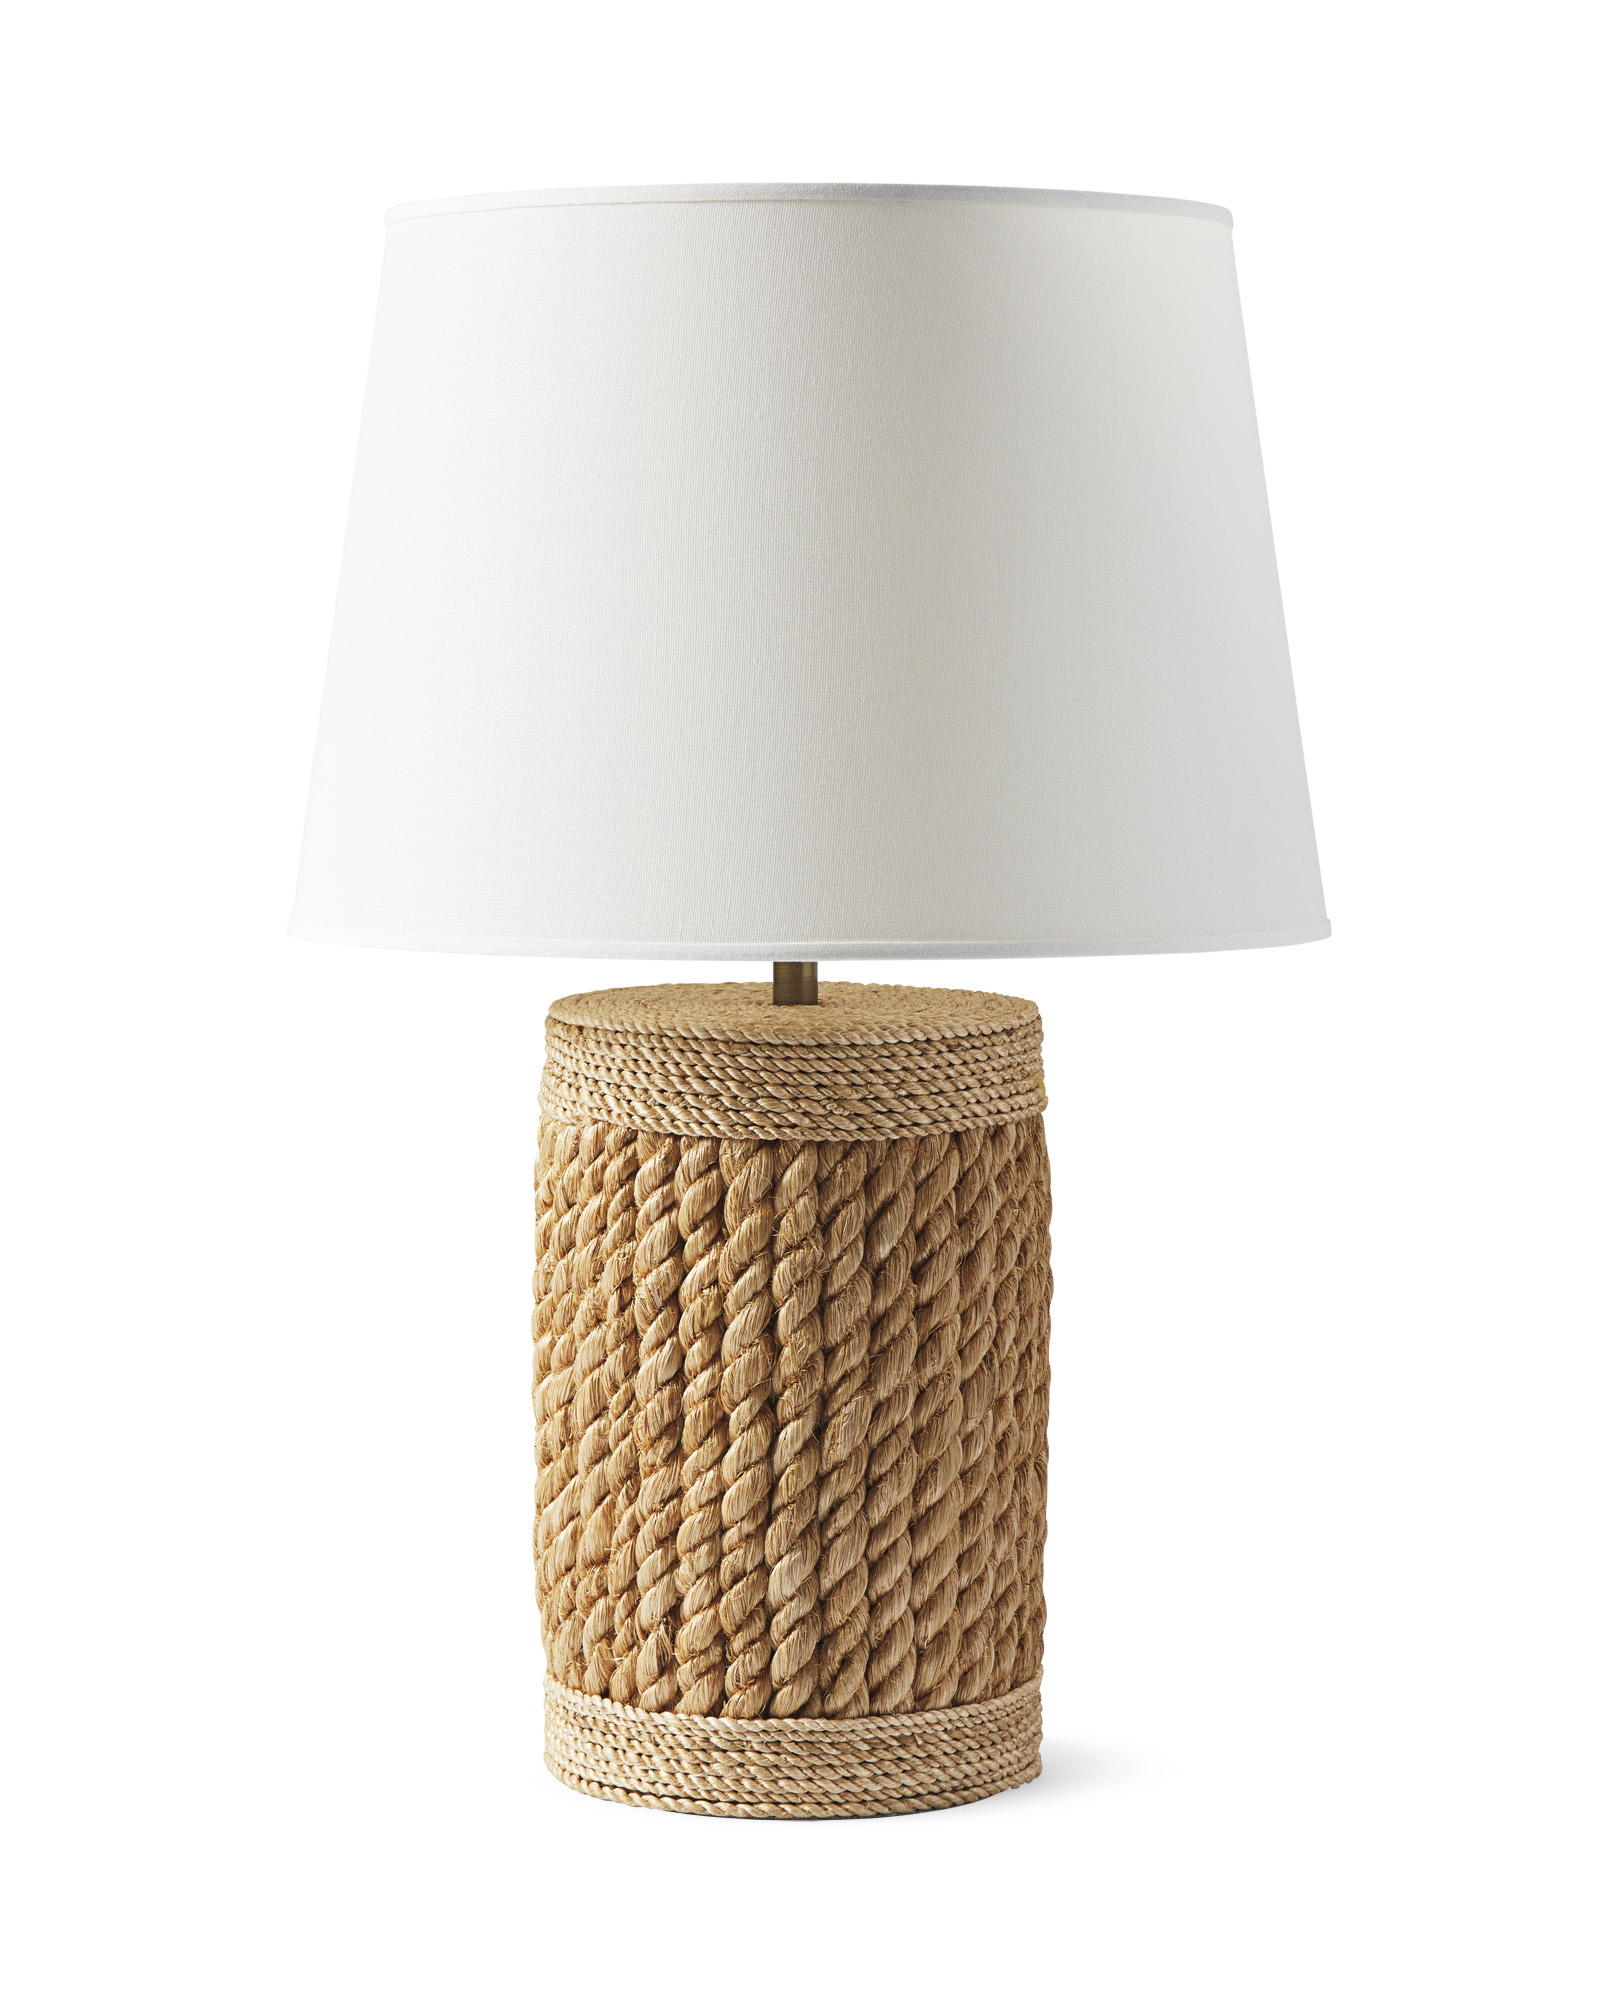 Digby Table Lamp,